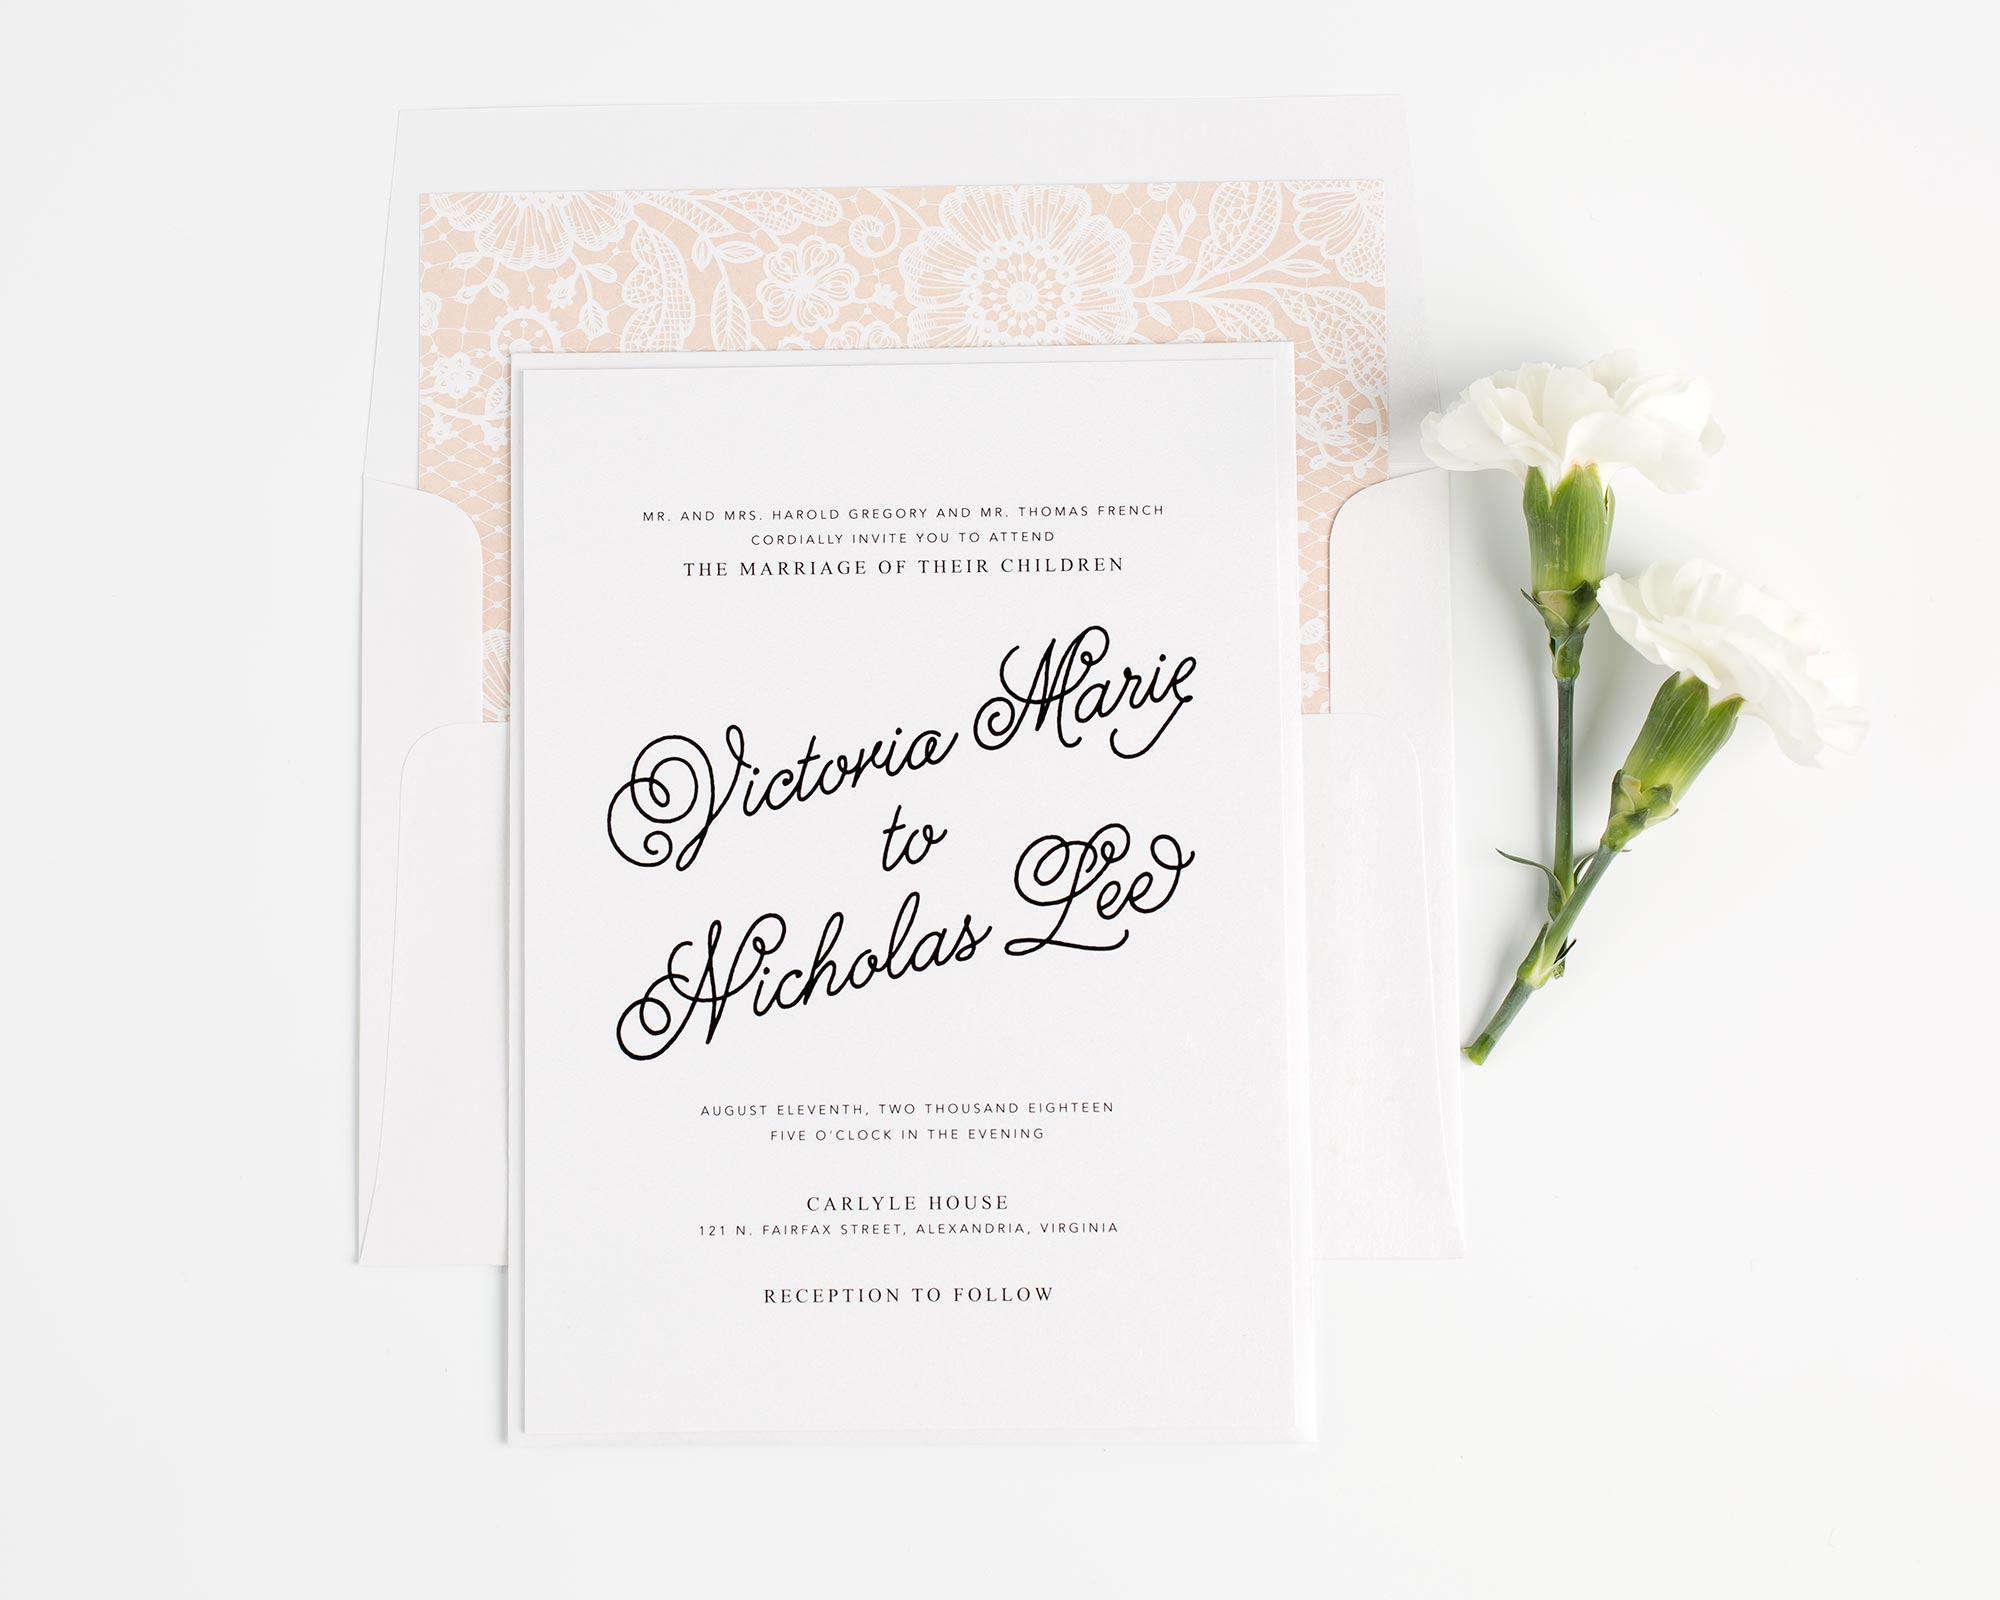 peach wedding invitations with a lace liner - Peach Wedding Invitations